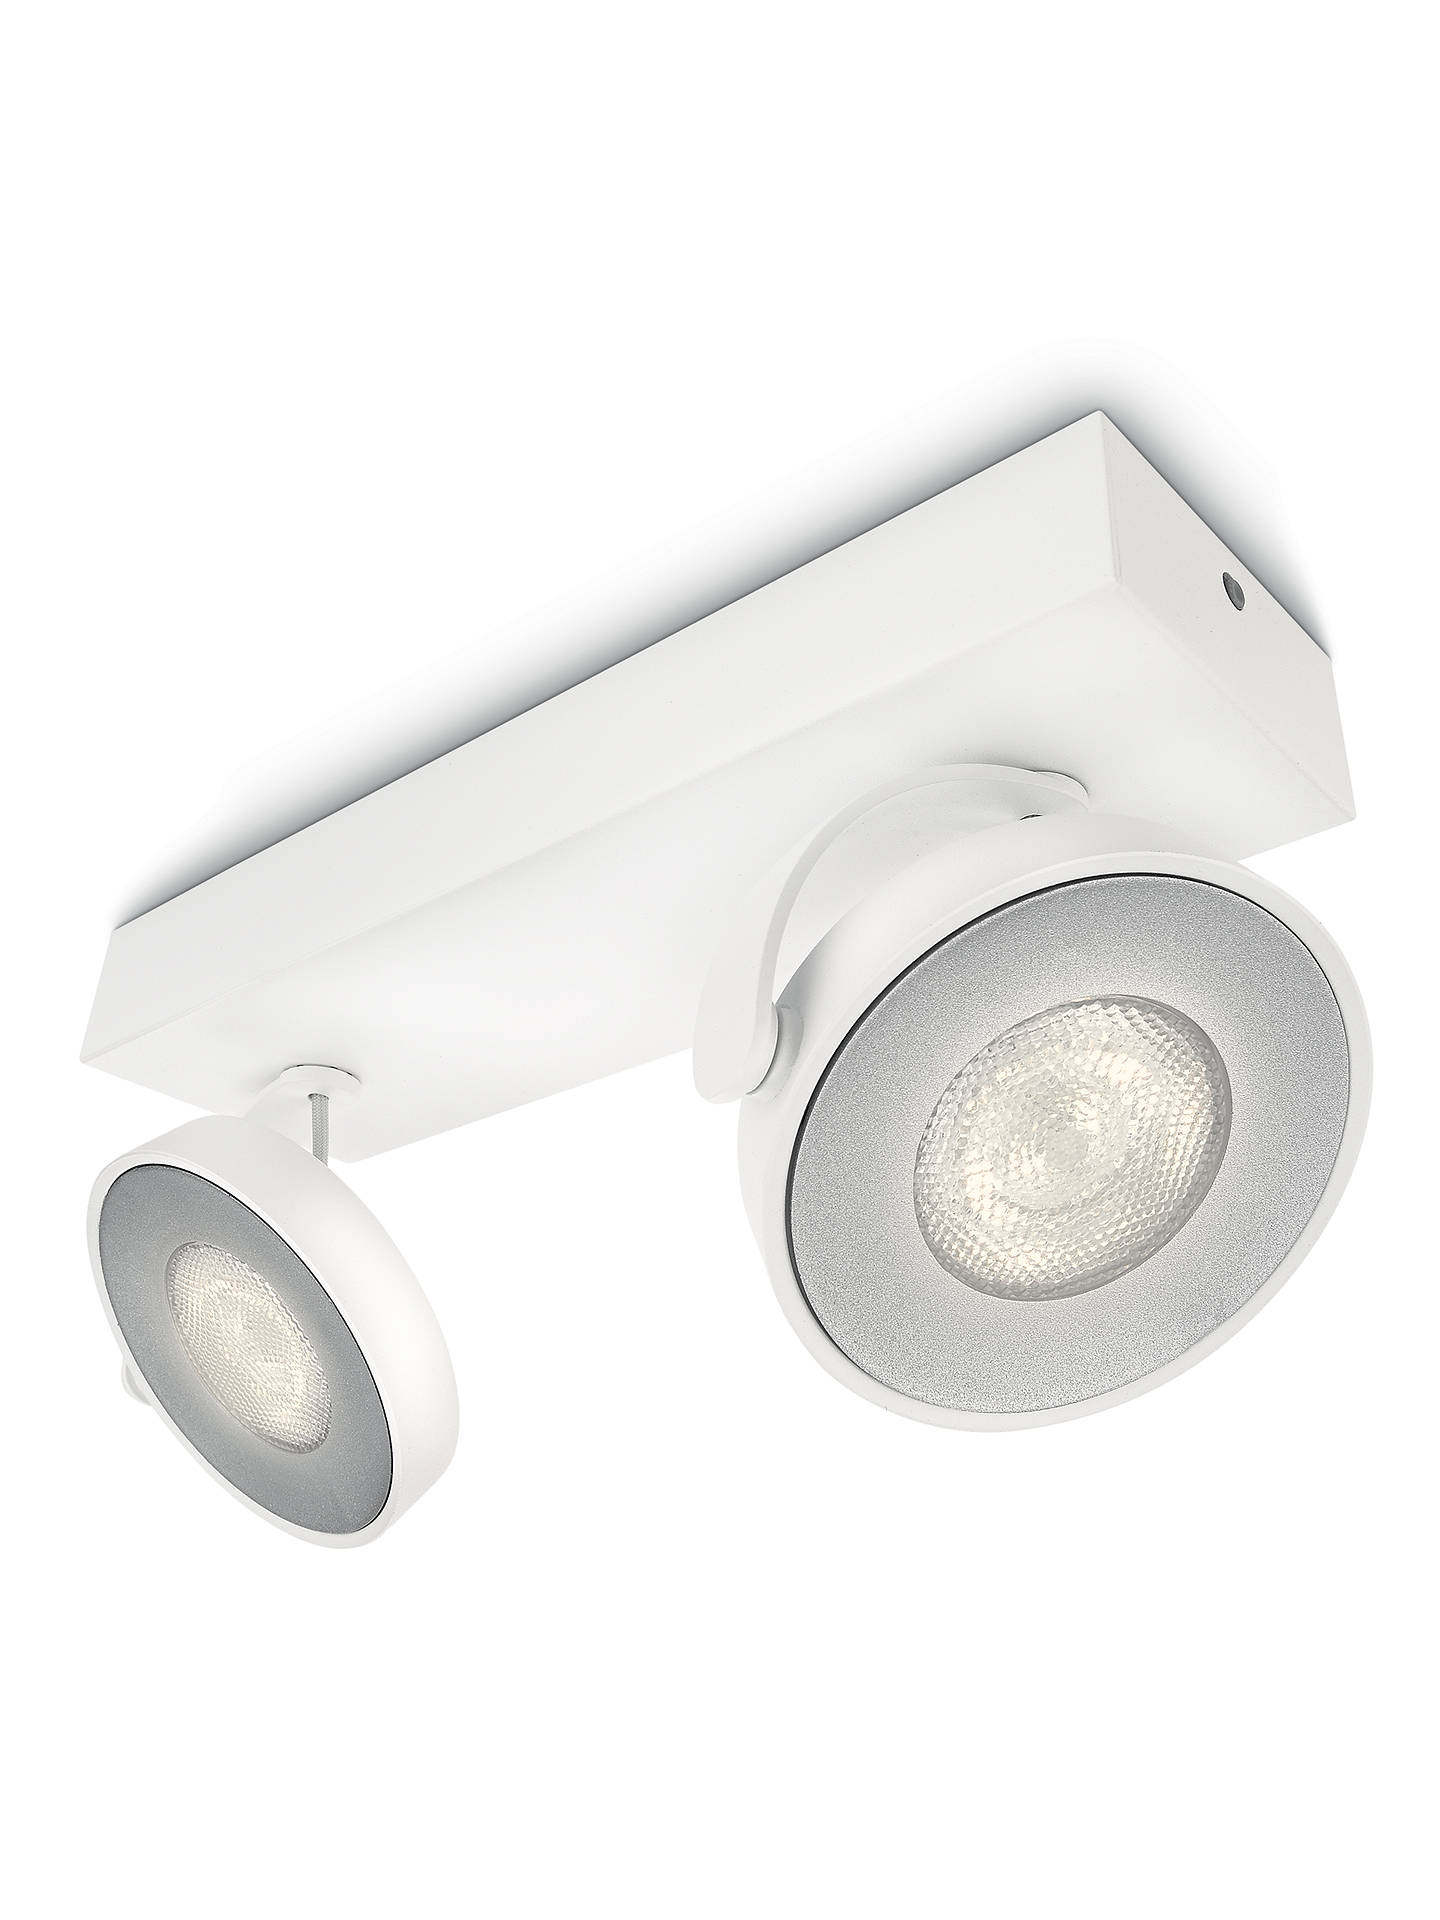 BuyPhilips Clockwork LED Warmglow Spotlight, 2 Light, White Online at johnlewis.com